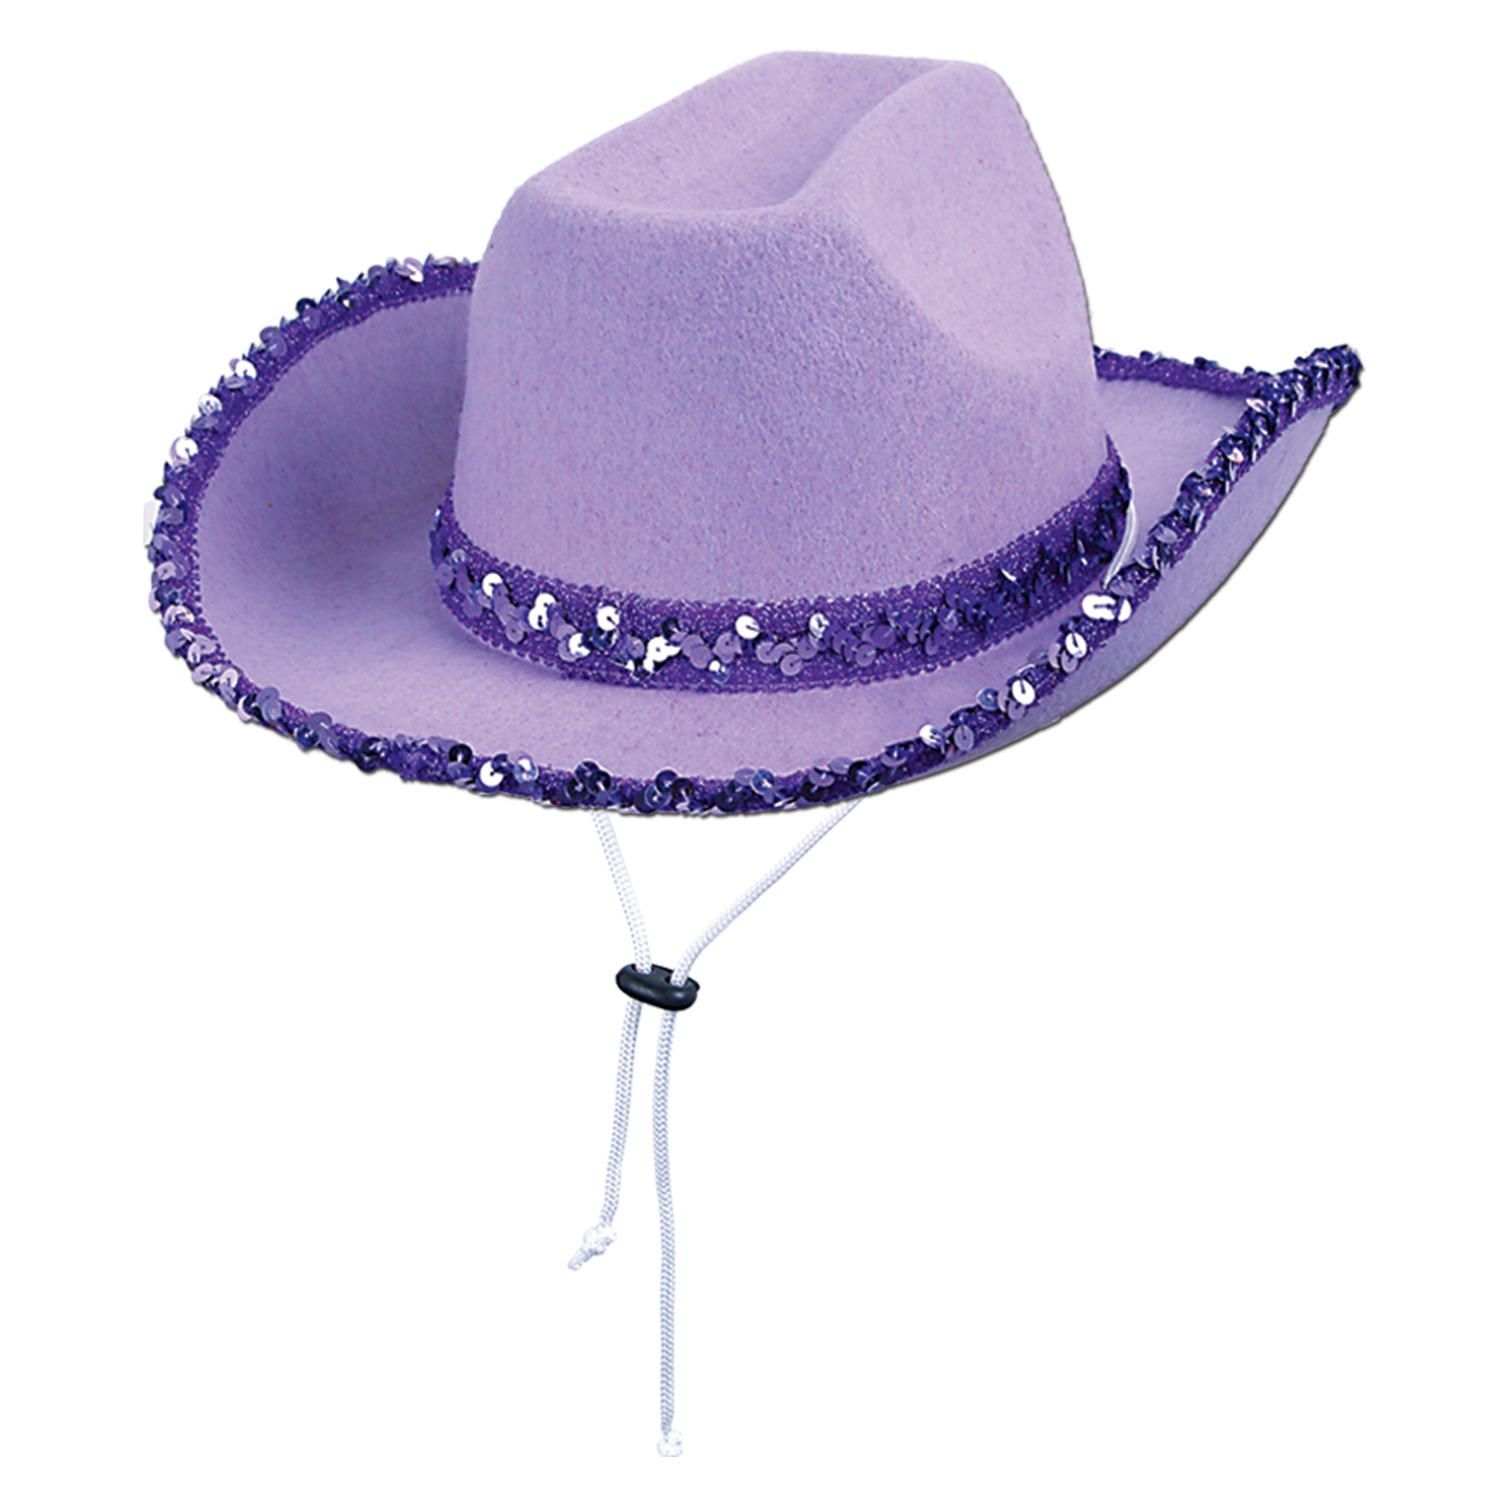 Purple felt cowgirl hat with purple sequined embelishments.